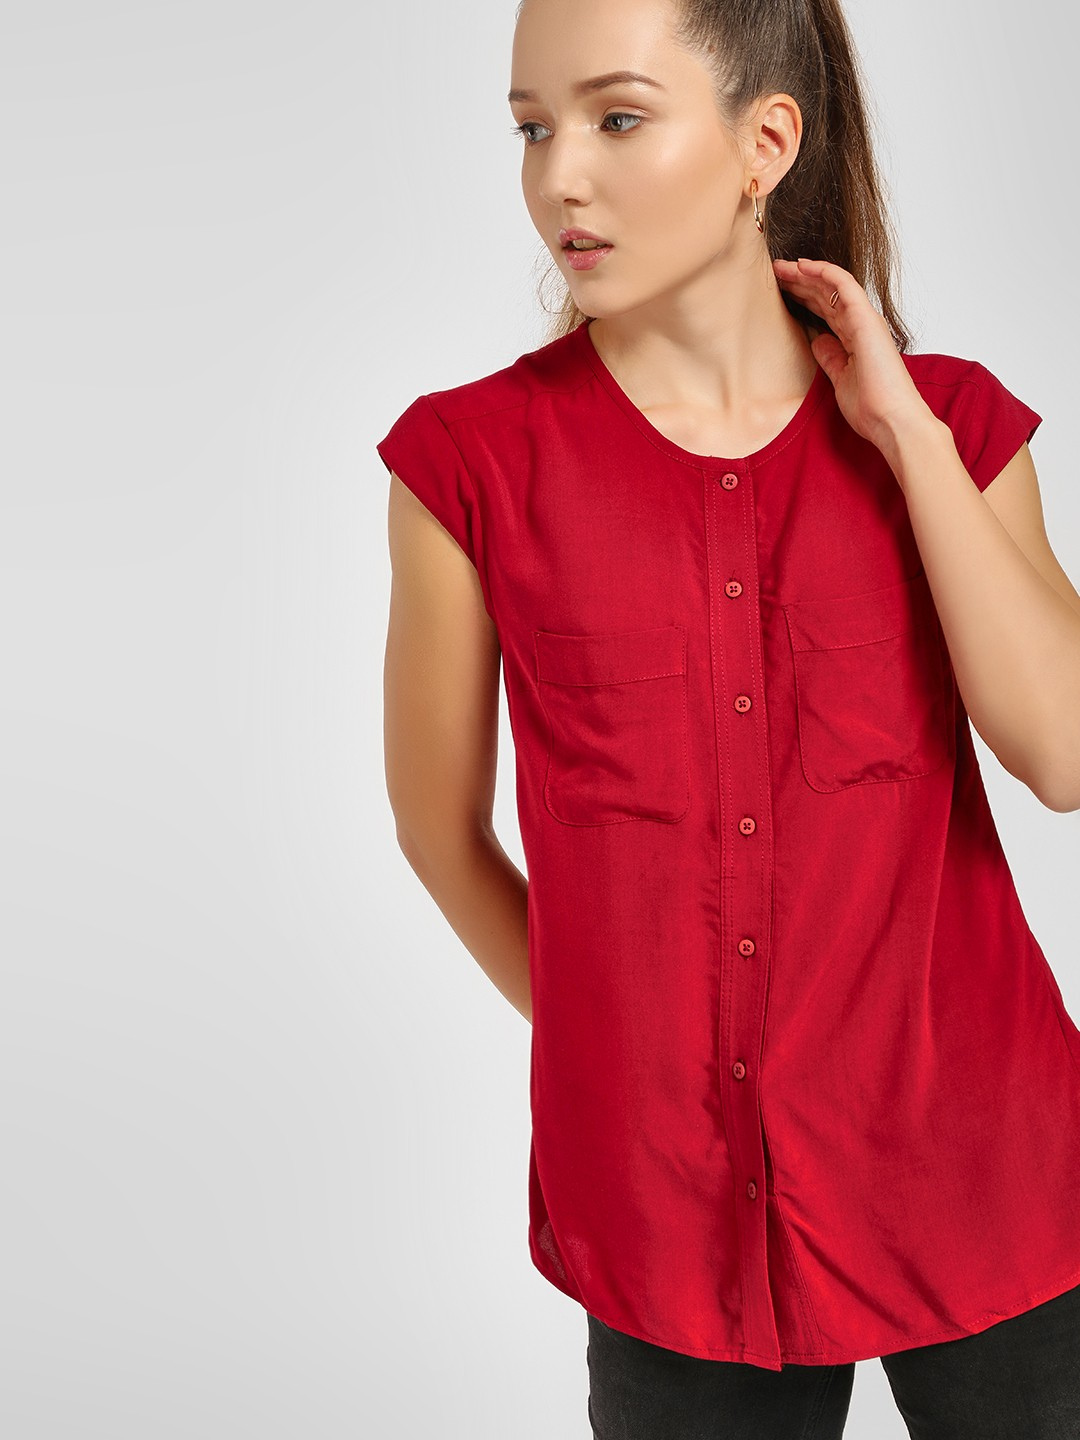 LC Waikiki Red Basic Cap Sleeve Blouse 1